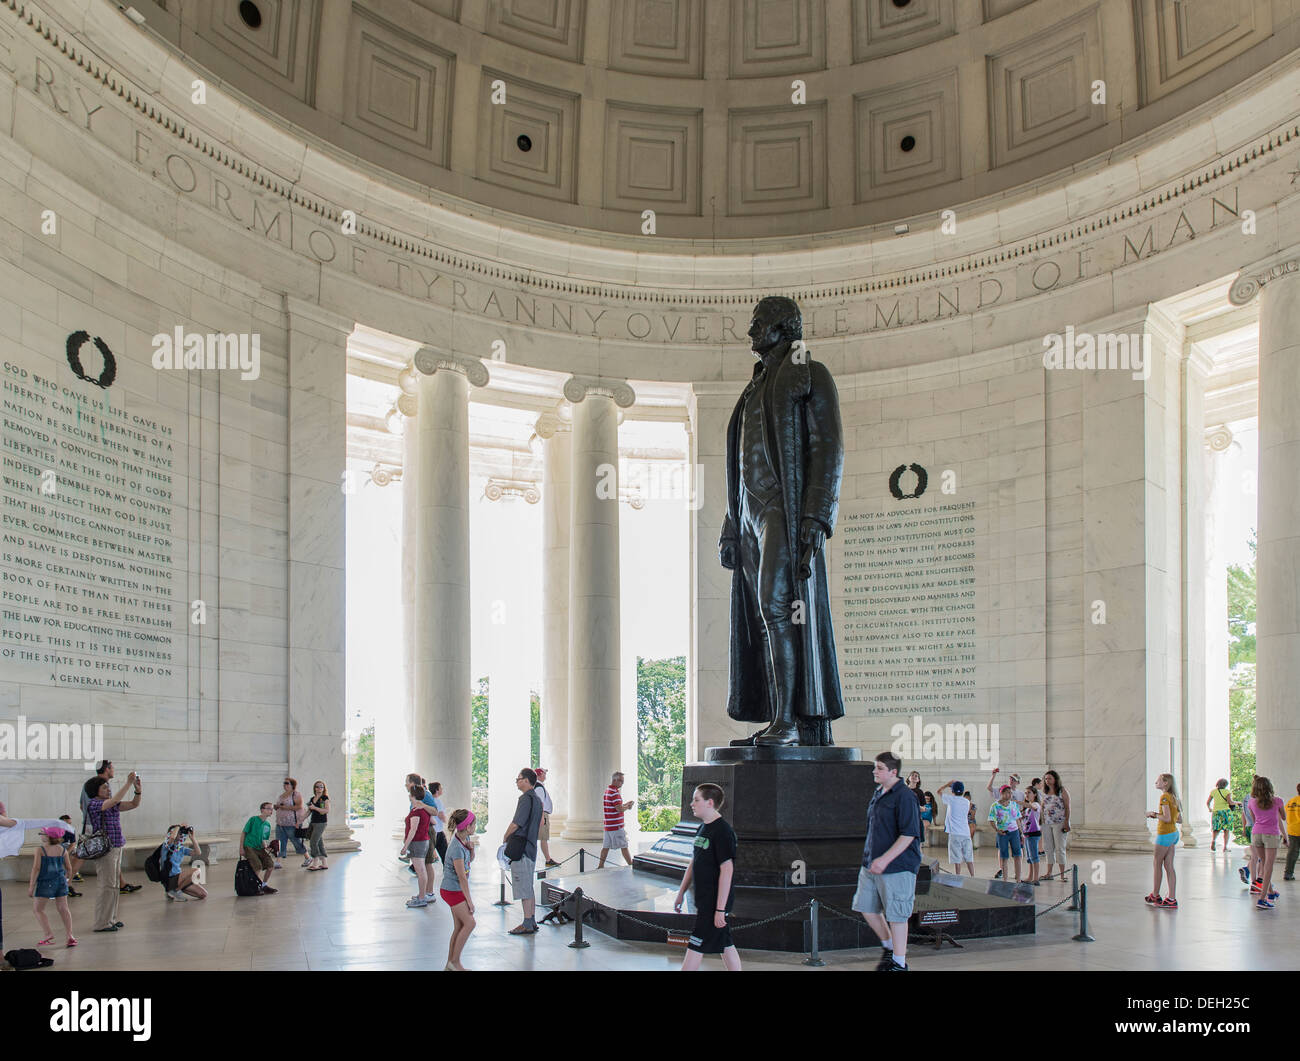 Interno, Jefferson Memorial, Washington DC, Stati Uniti d'America Immagini Stock